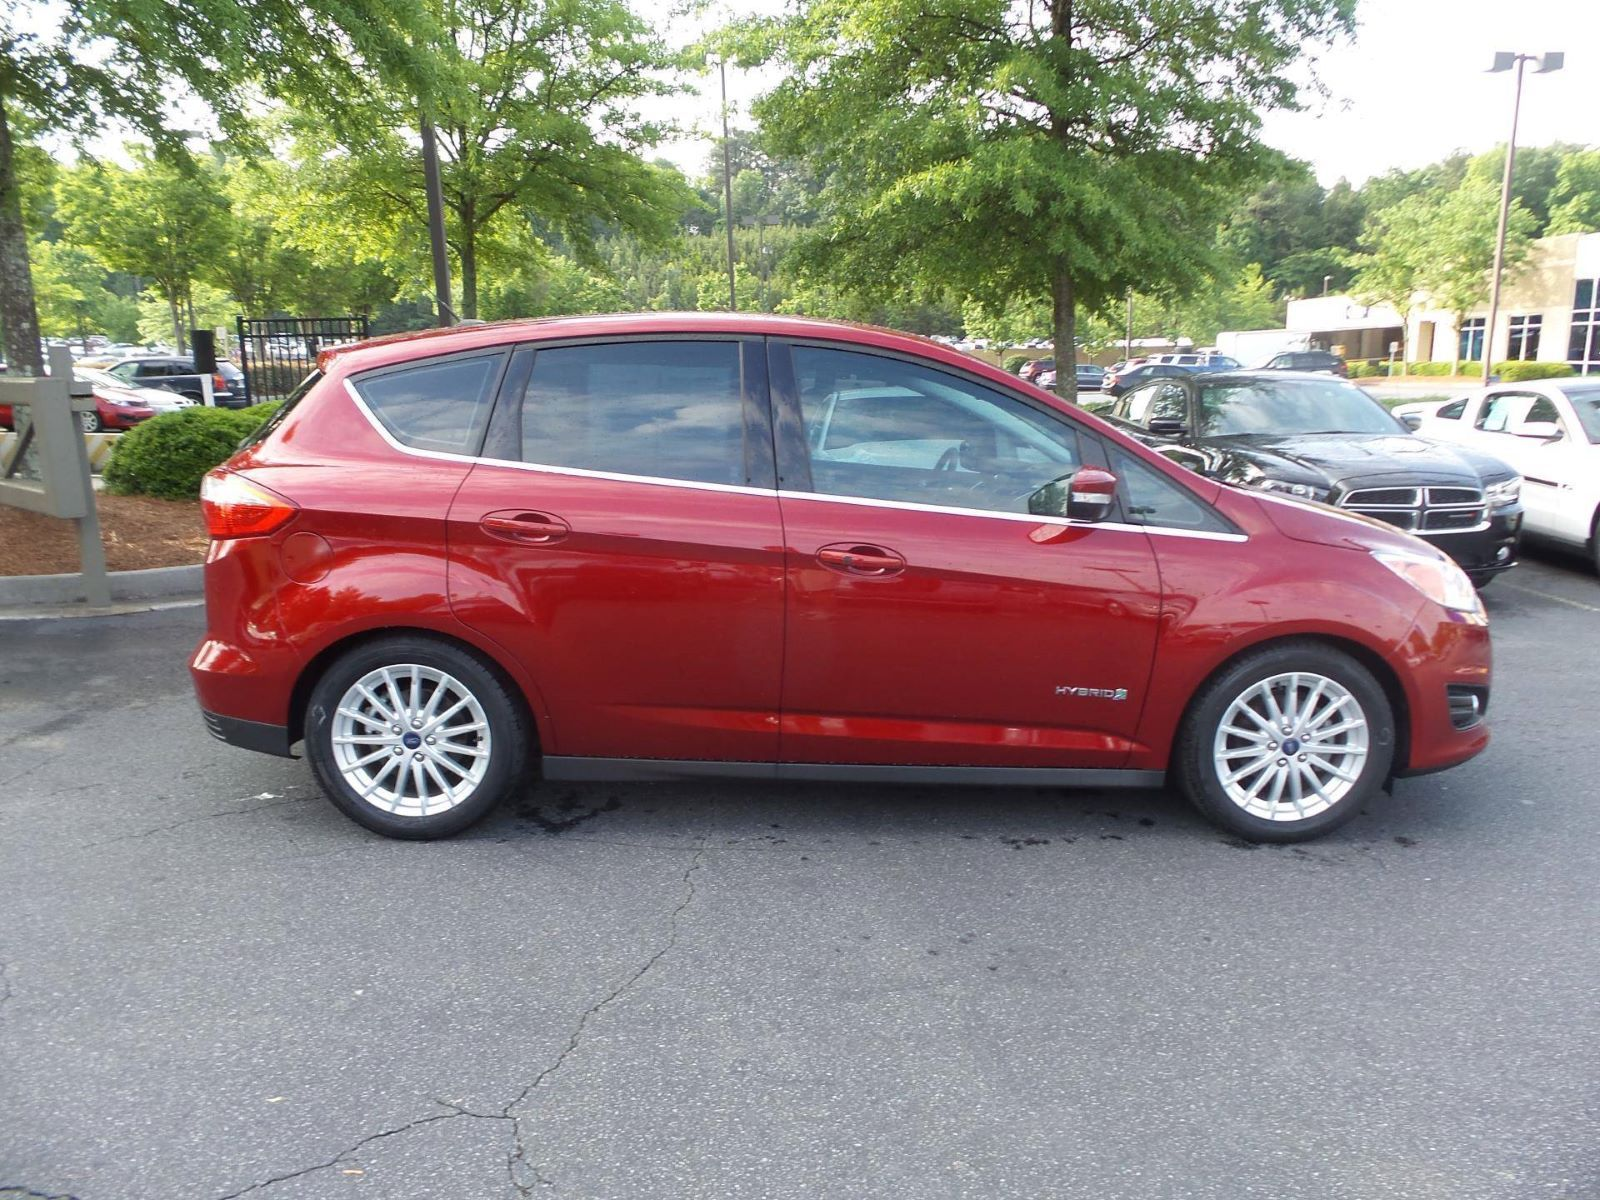 Used 2013 Ford C Max In Kennesaw Georgia Carmax Ford Carmax